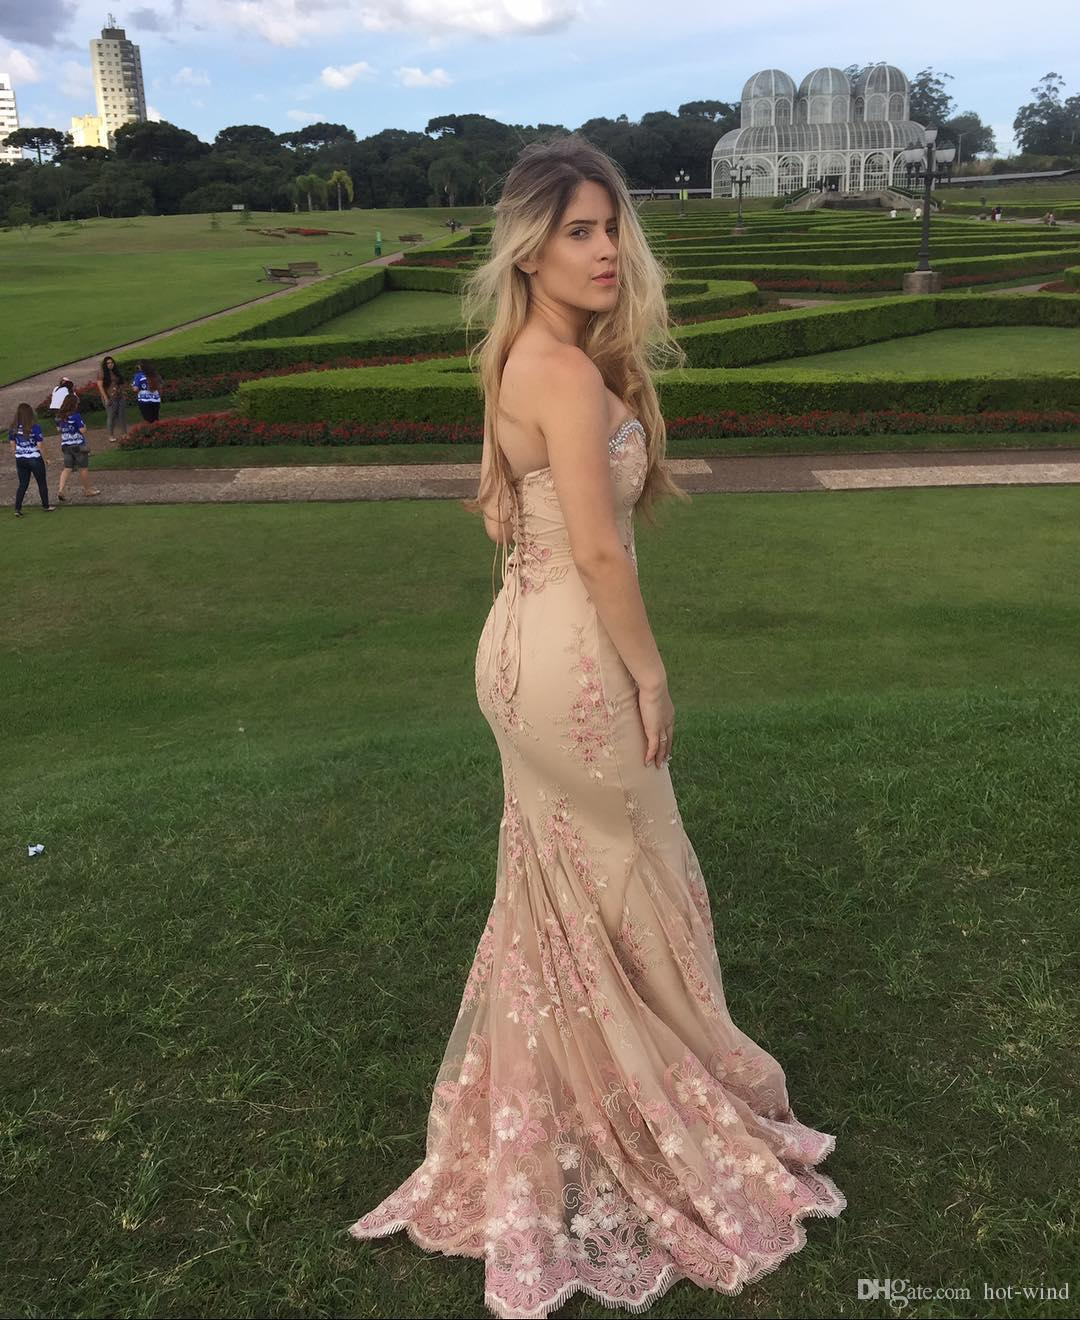 Beautiful Sweetheart Crystals Beaded Neckline Long Prom Dresses Lace Flowers Appliqued Mermaid Prom Evening Gowns Corset Back